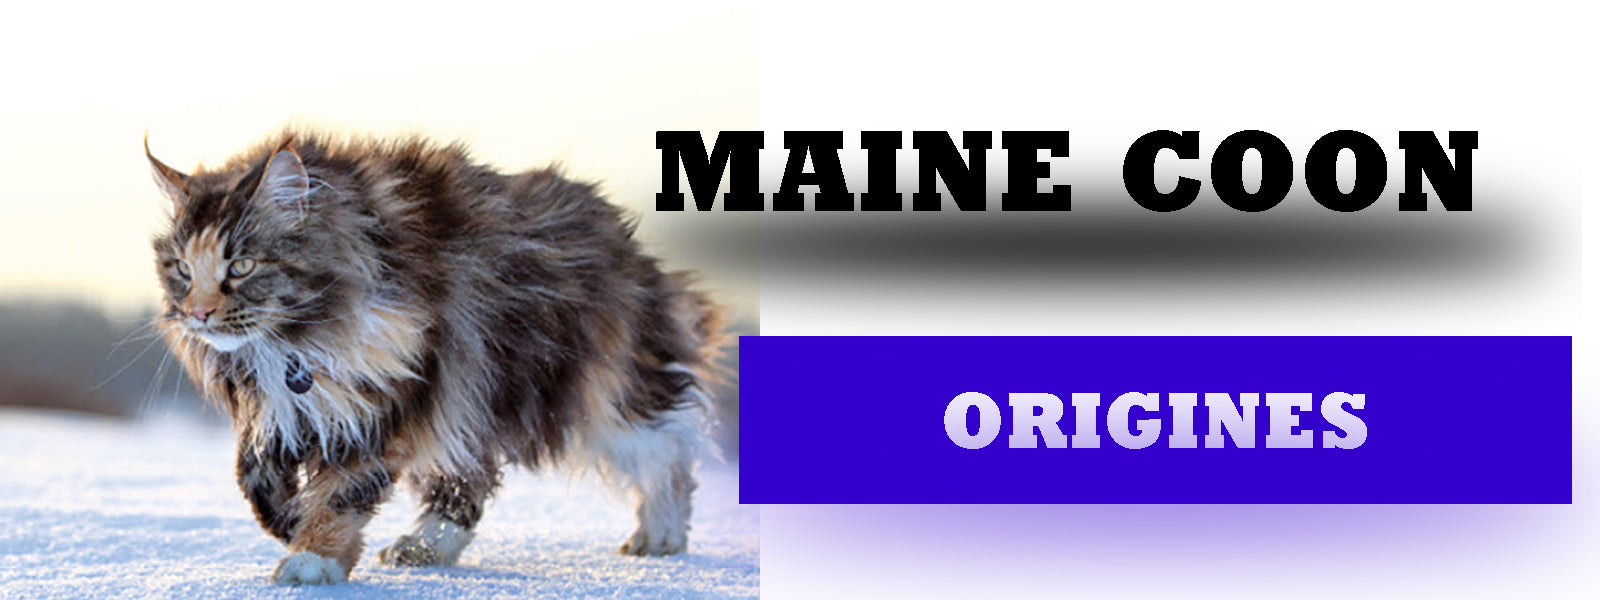 Origines Maine Coon  | La boutique du Maine Coon